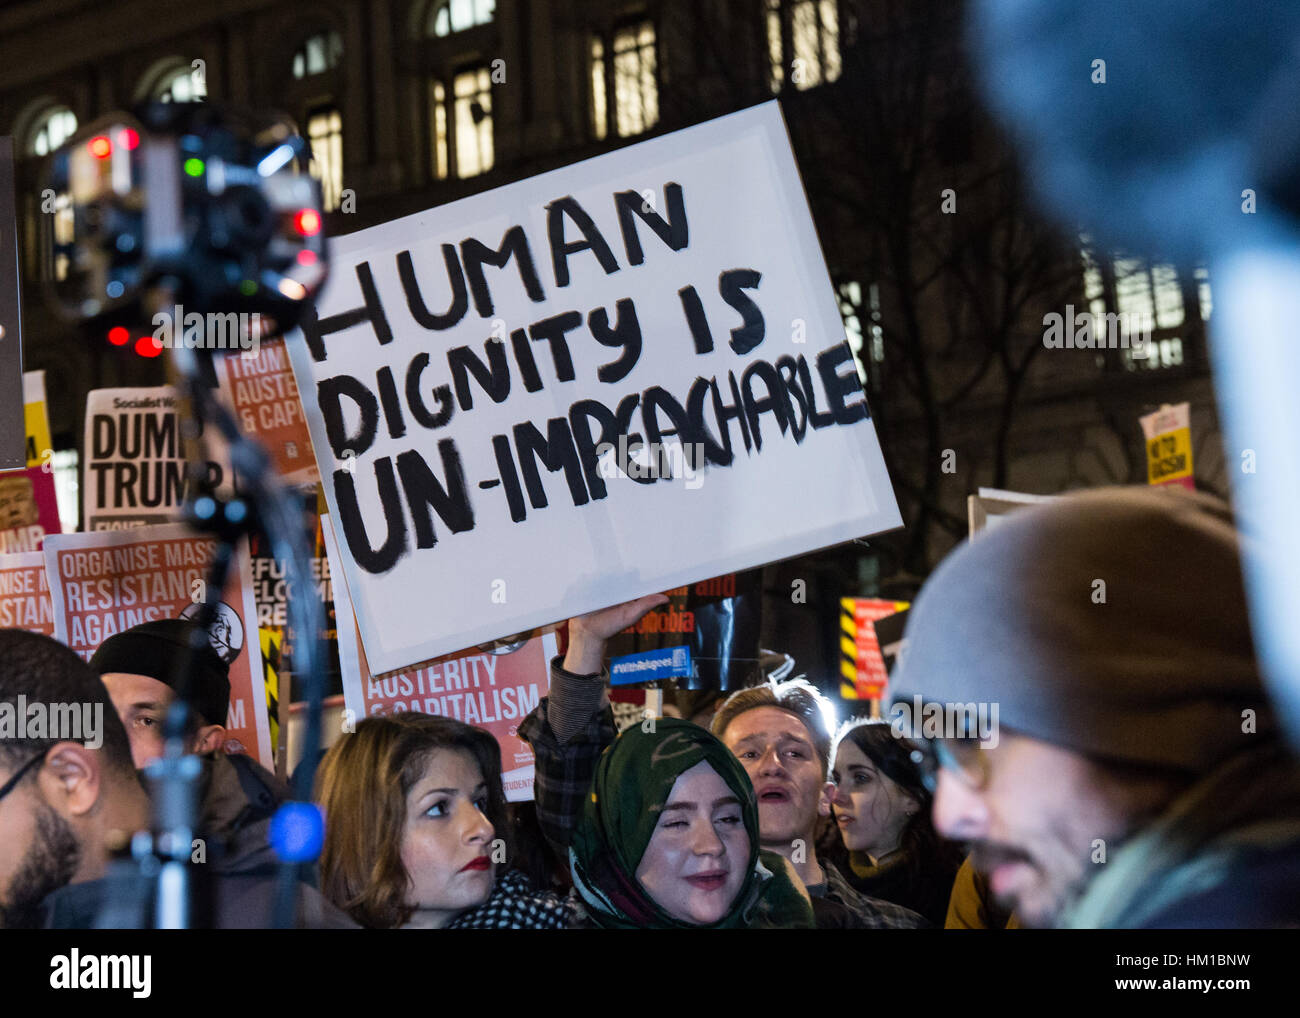 London, UK. 30th January, 2017. Thousands of people gather outside Downing Street to protest against the Muslim - Stock Image